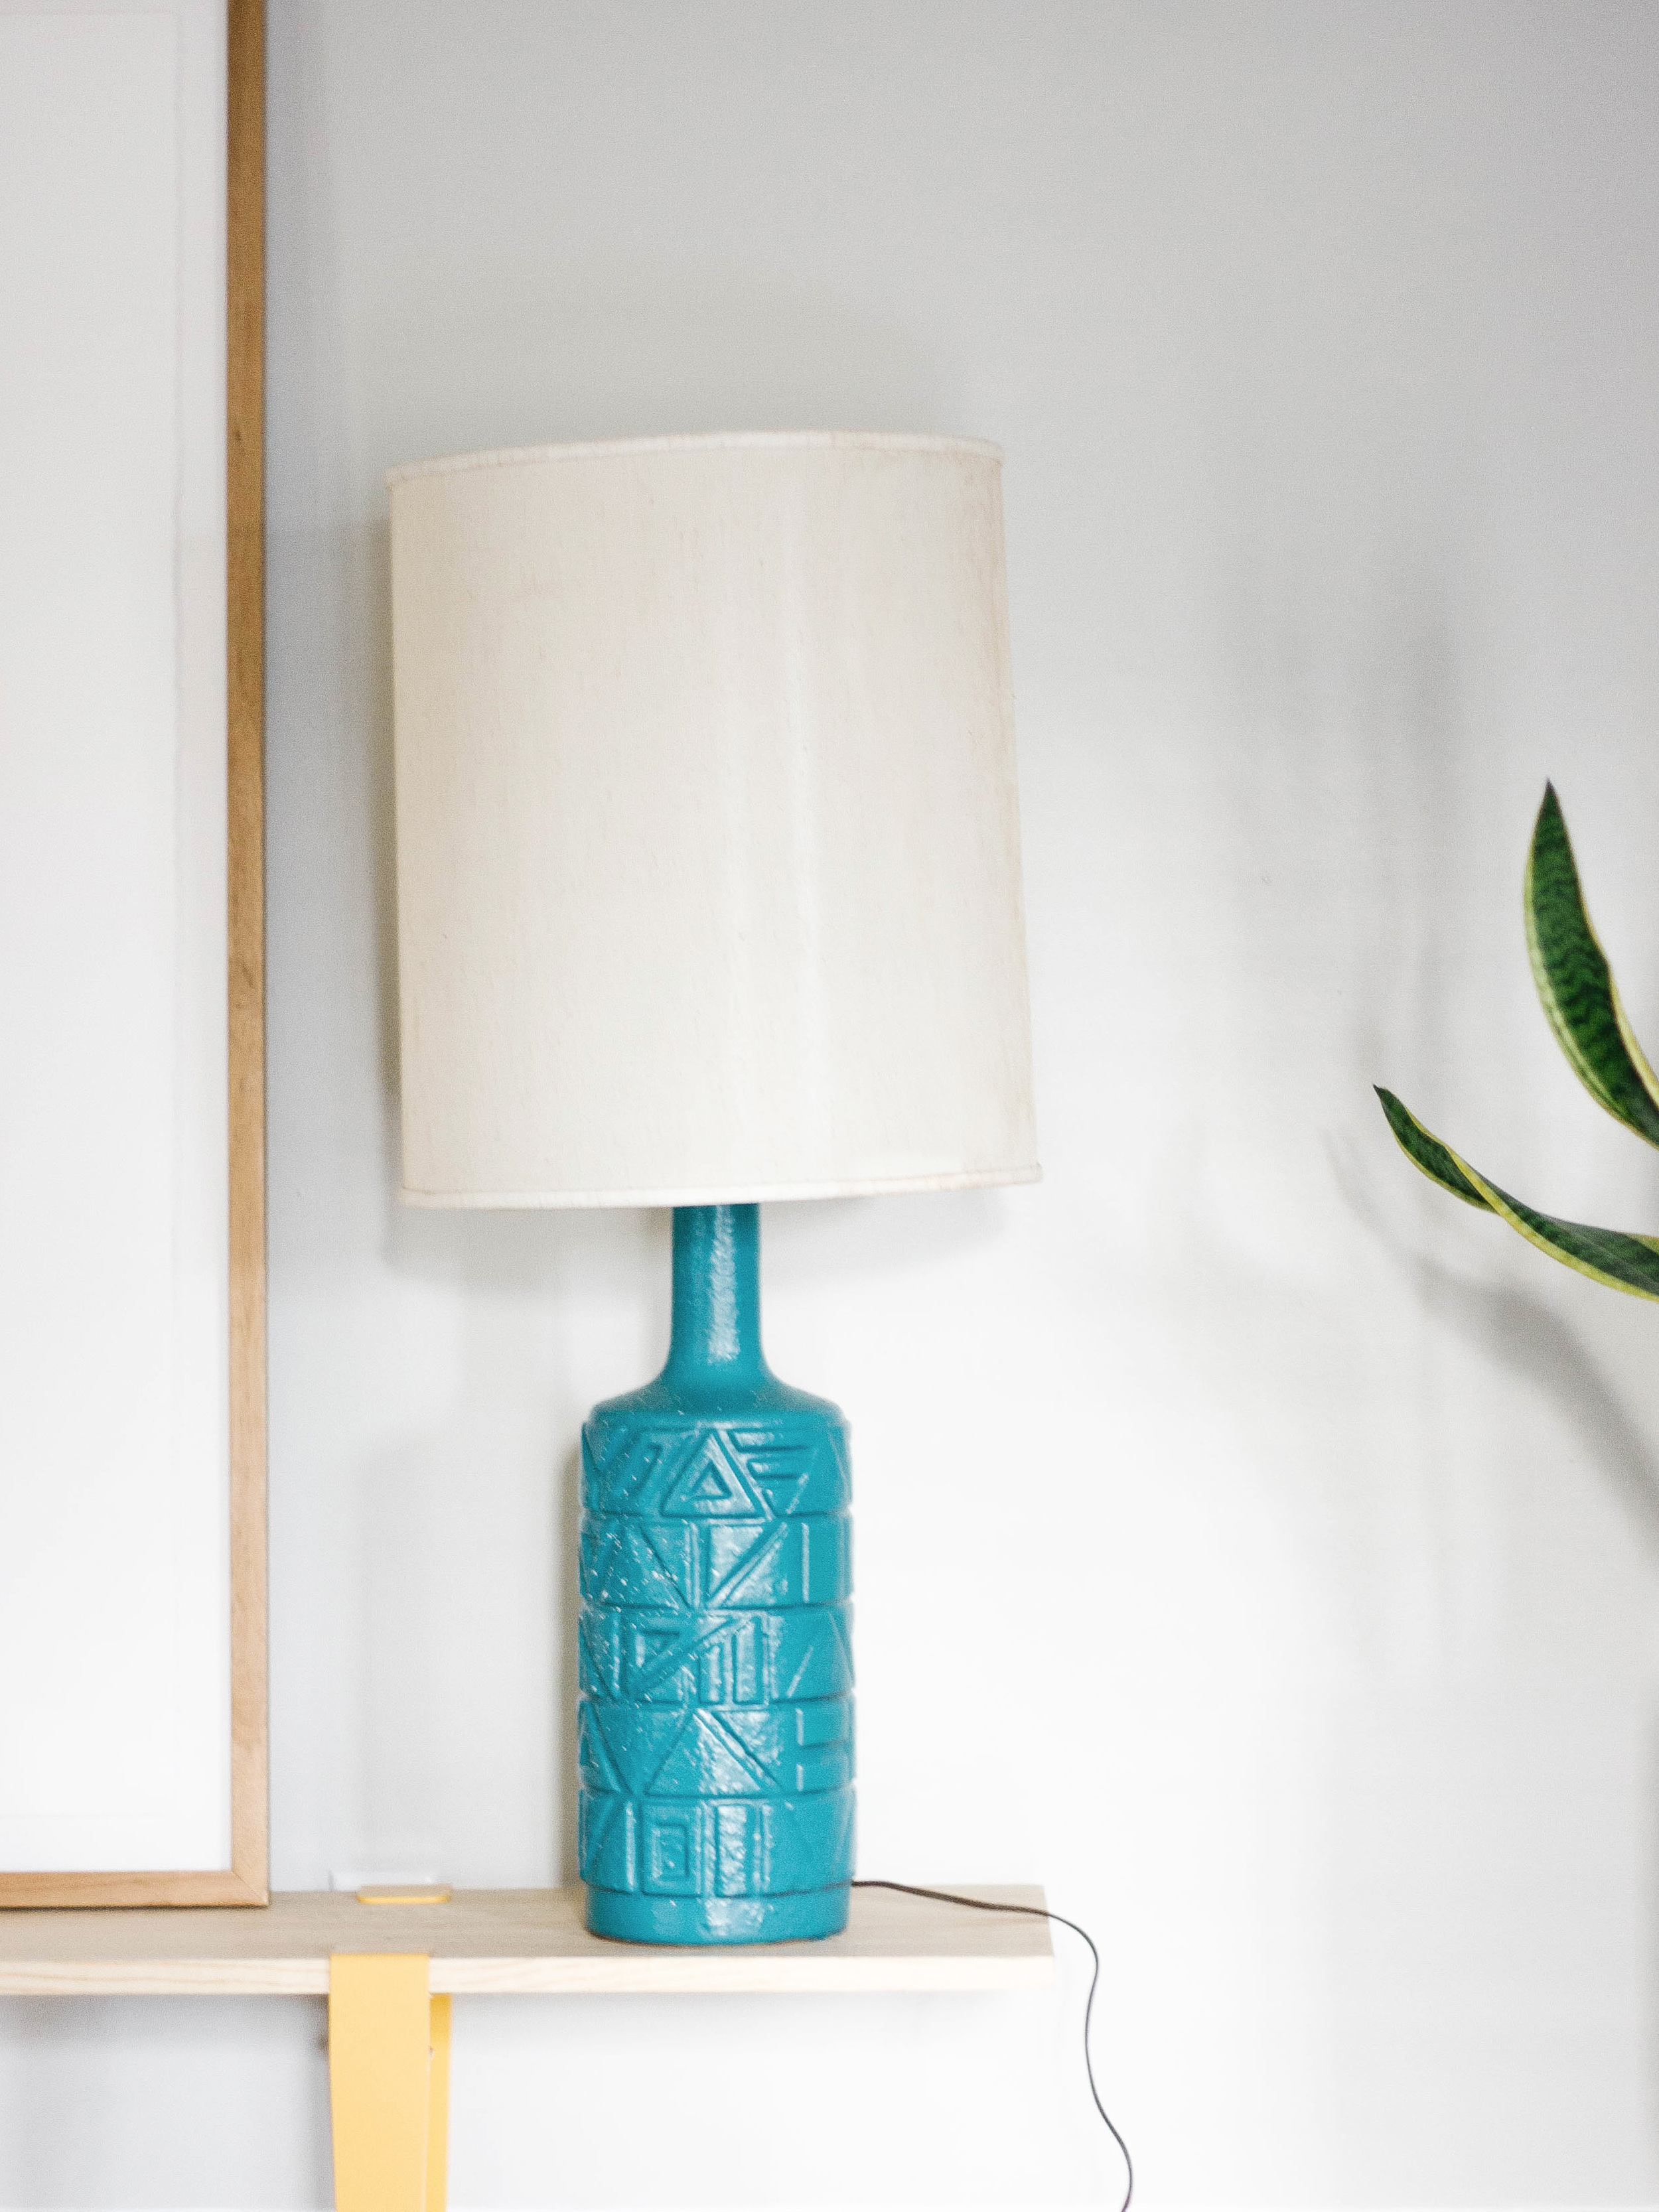 OLD BRAND NEW • BEFORE + AFTER VINTAGE LAMP